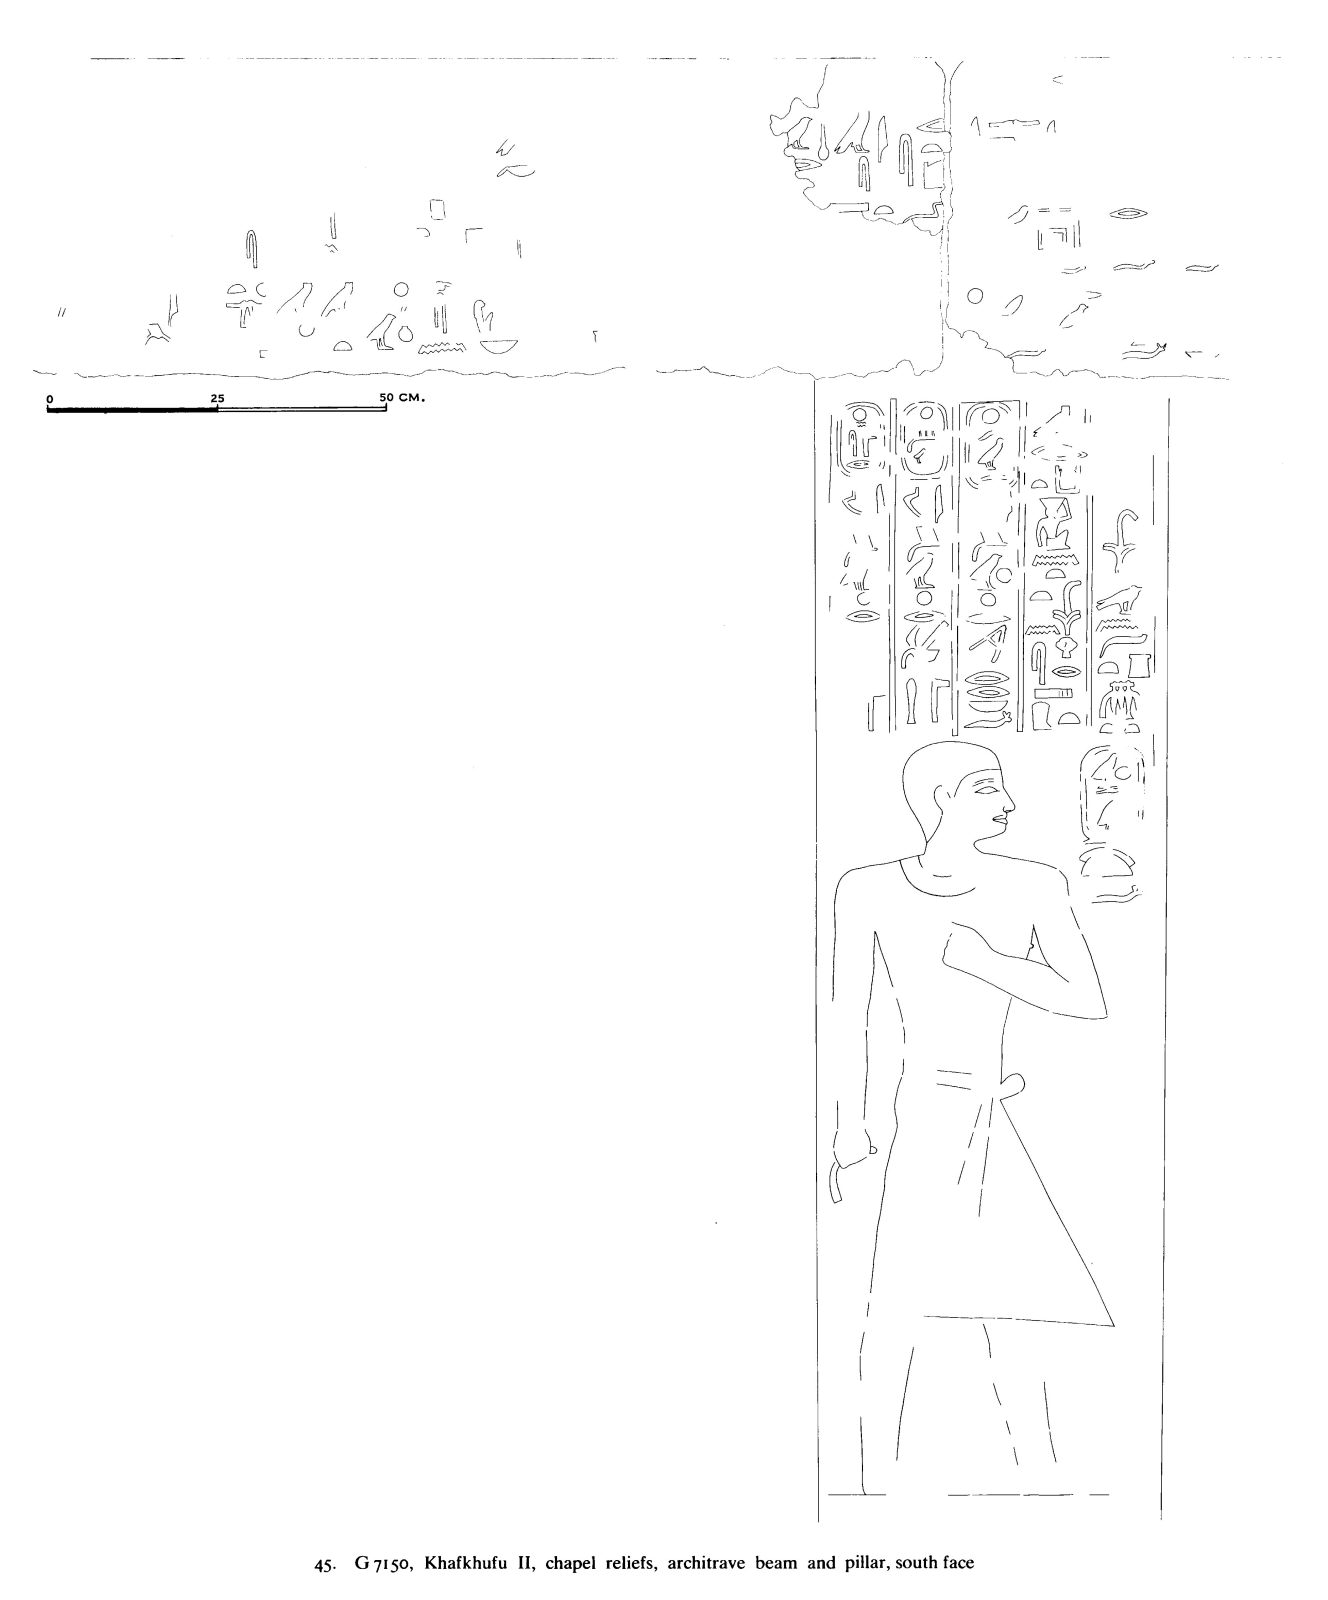 Drawings: G 7150: relief from chapel, architrave beam and pillar, S face